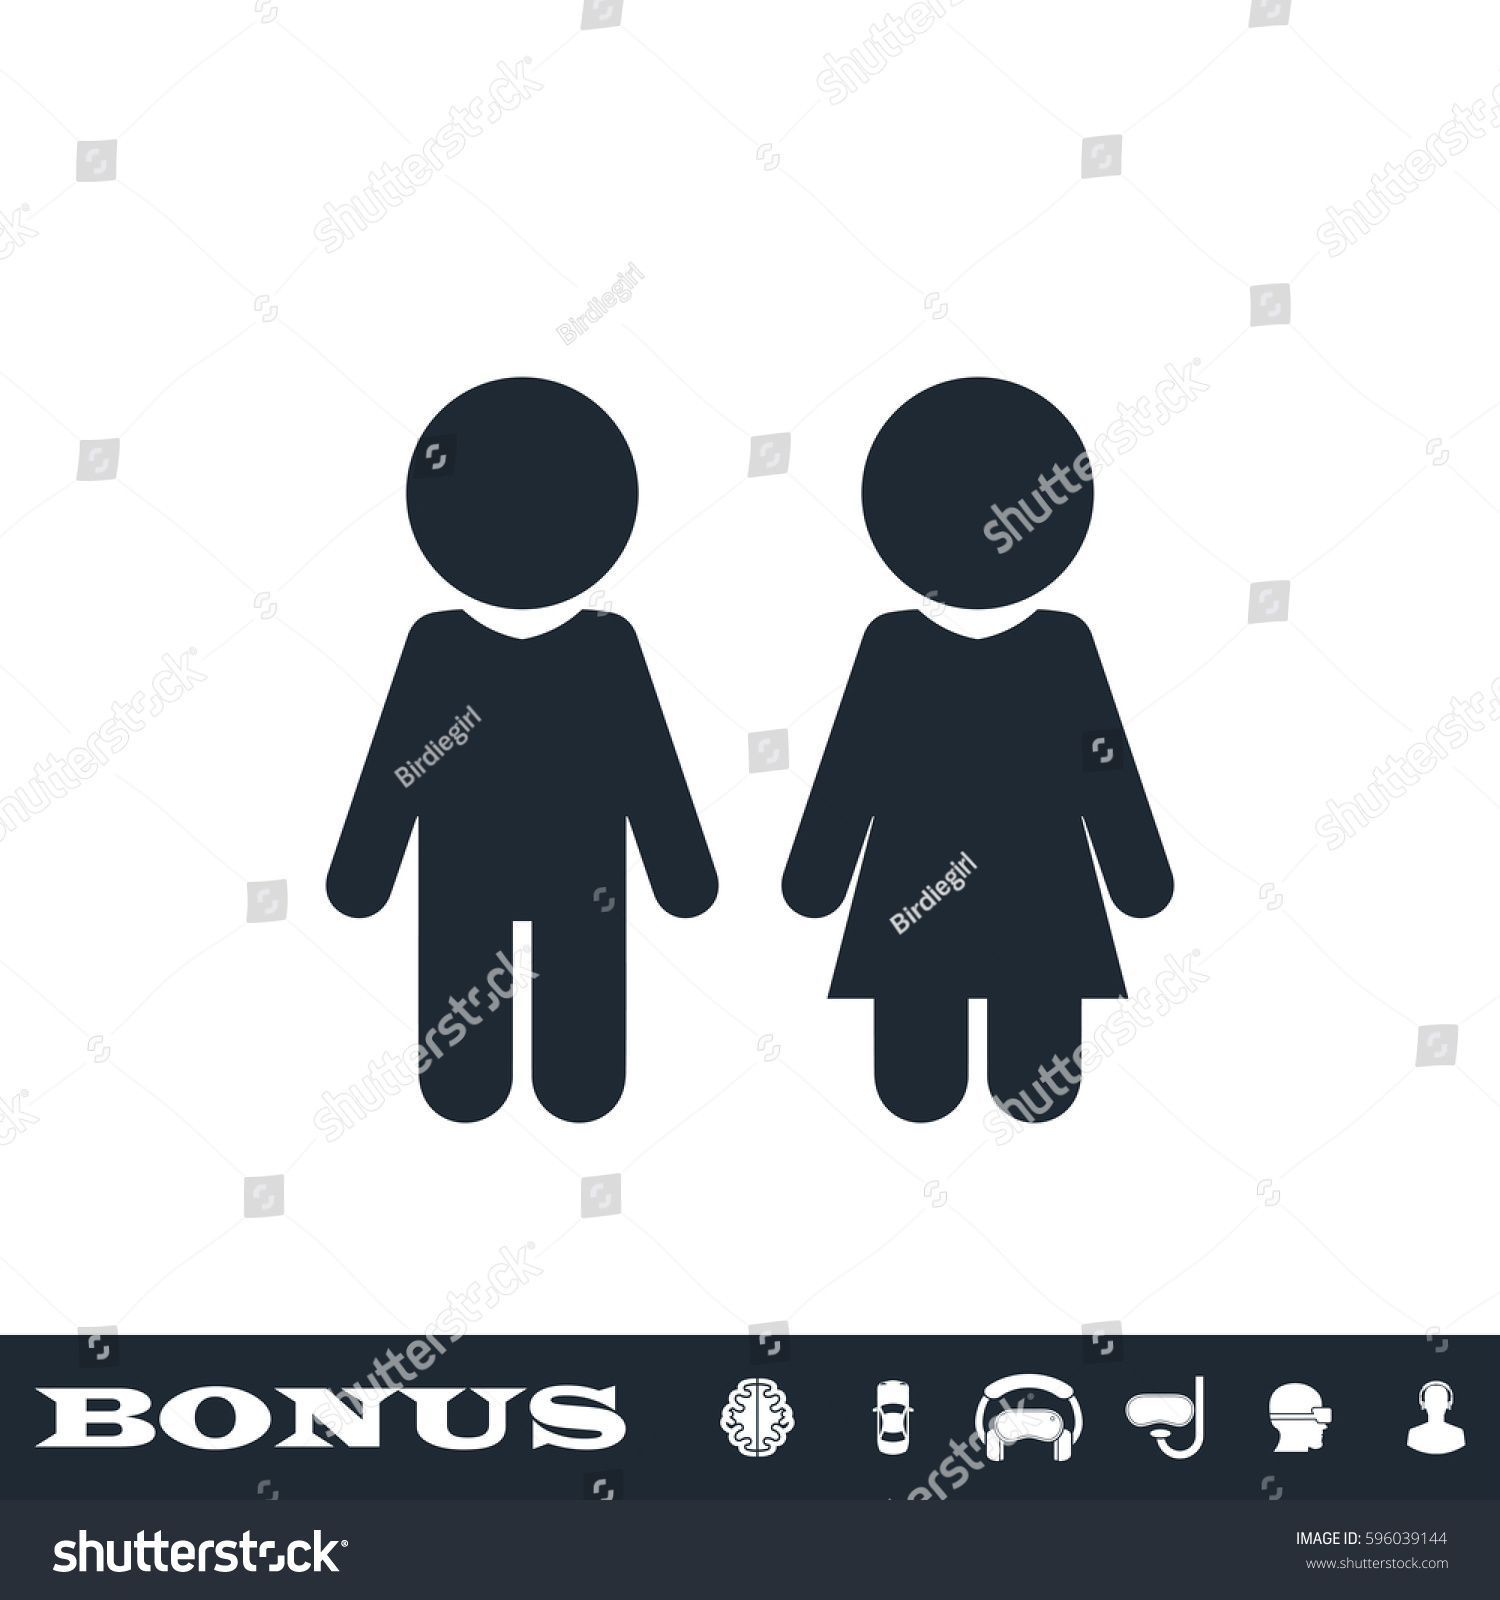 Girl And Boy Icon Flat Simple Black Pictogram On Grey Background